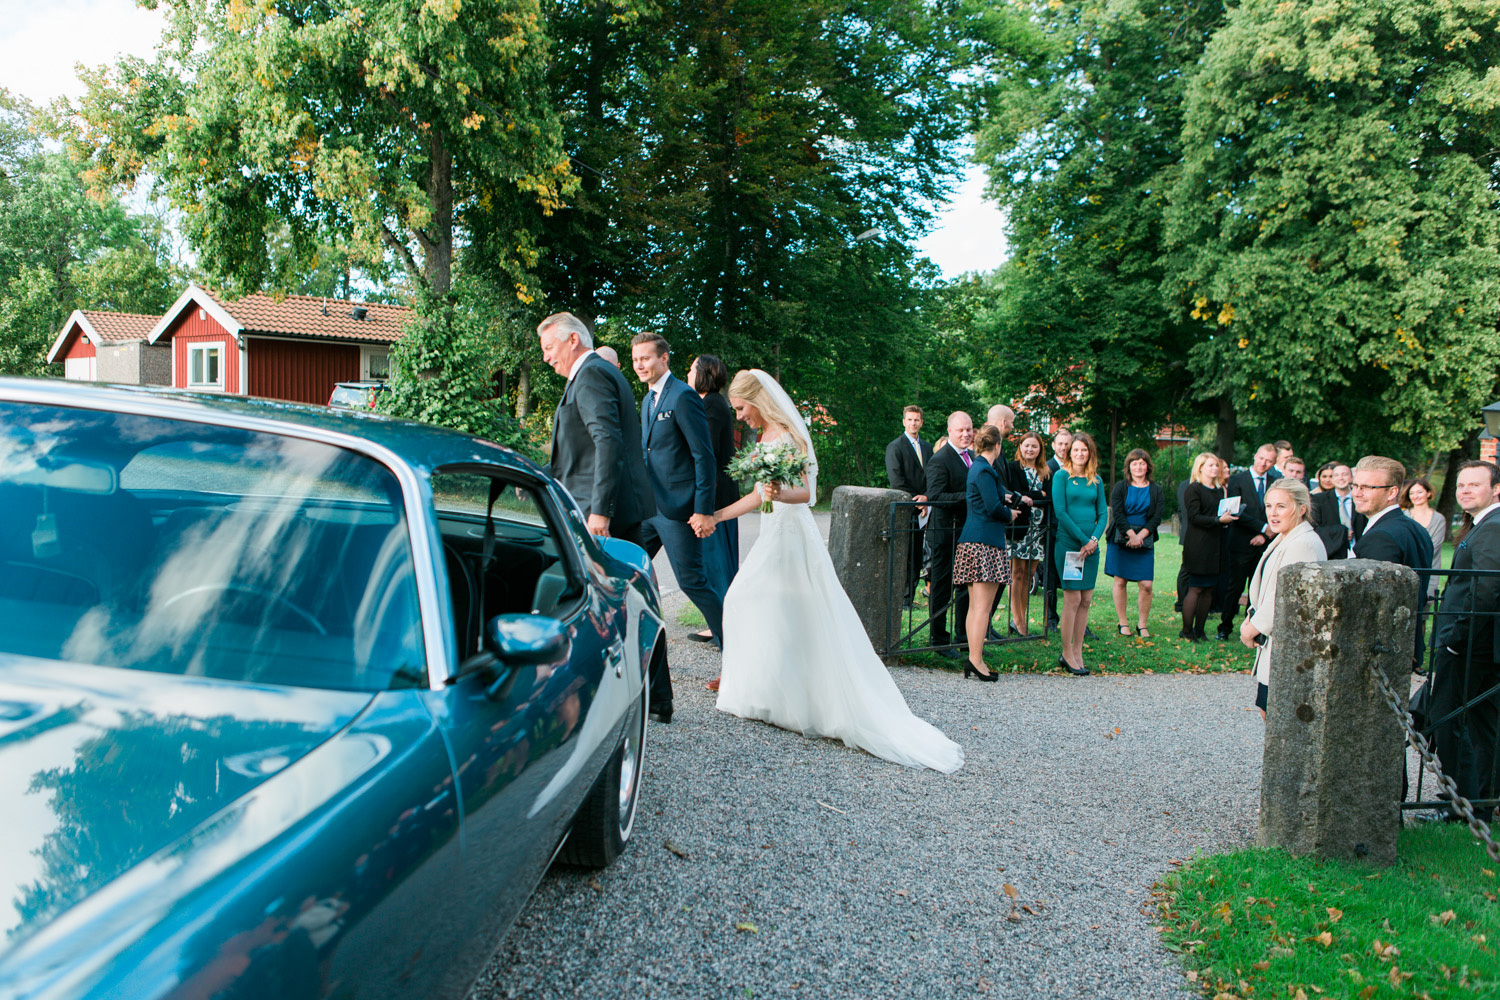 058-sweden-vidbynäs-wedding-photographer-bröllopsfotograf.jpg